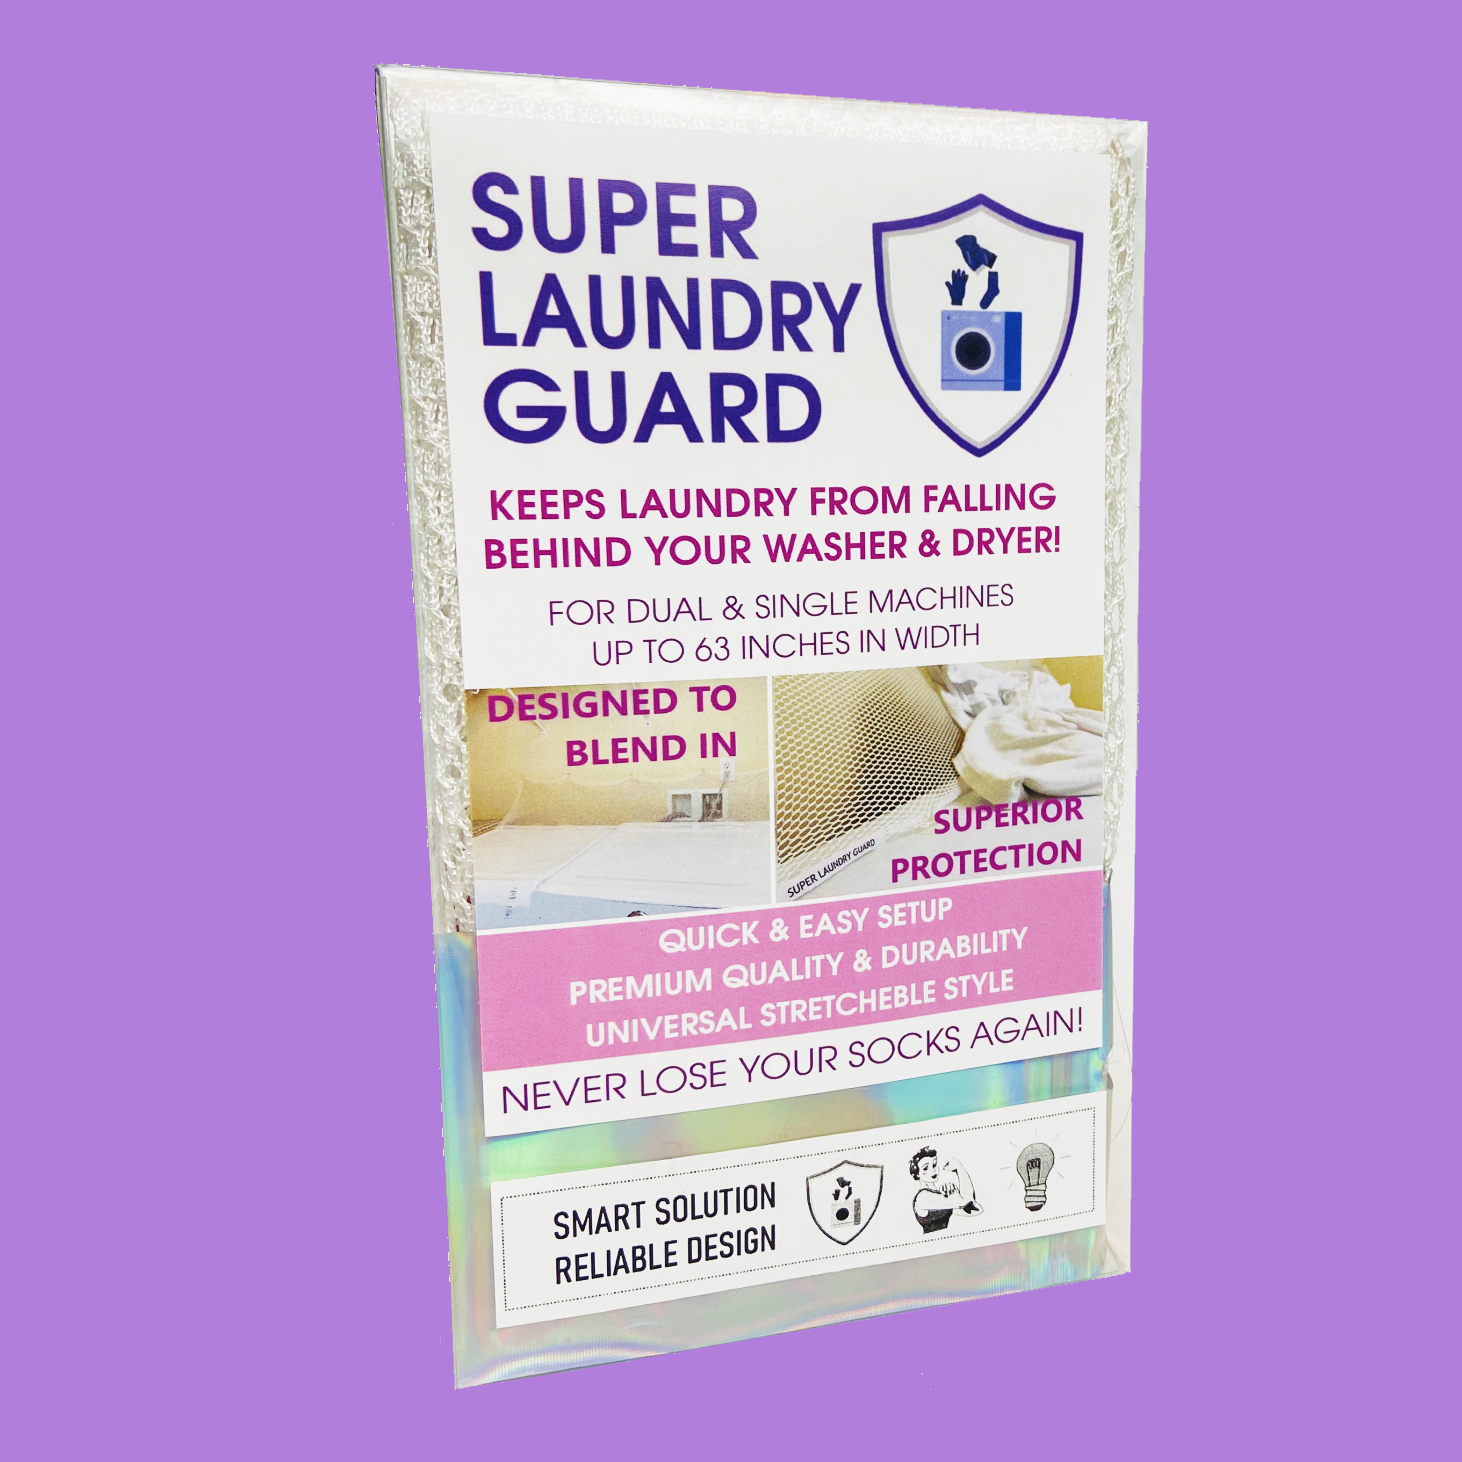 Super Laundry Guard Dryer Guard Washer Guard Clothes Guard Shield Behind Washer 12